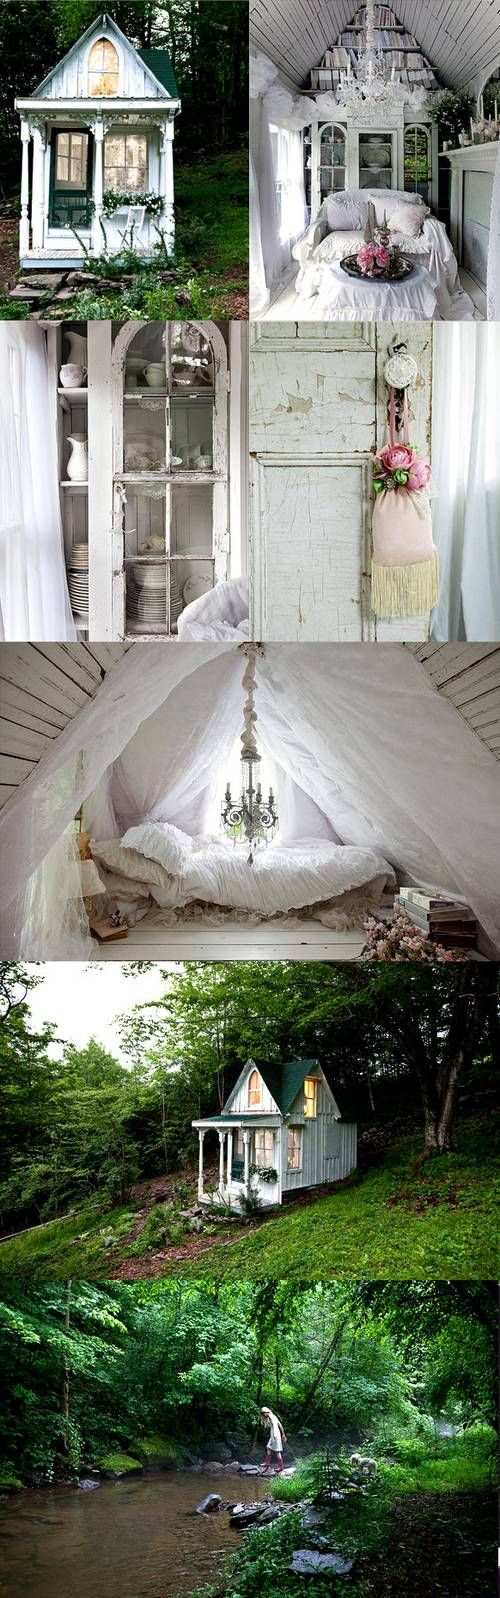 I could live here :)